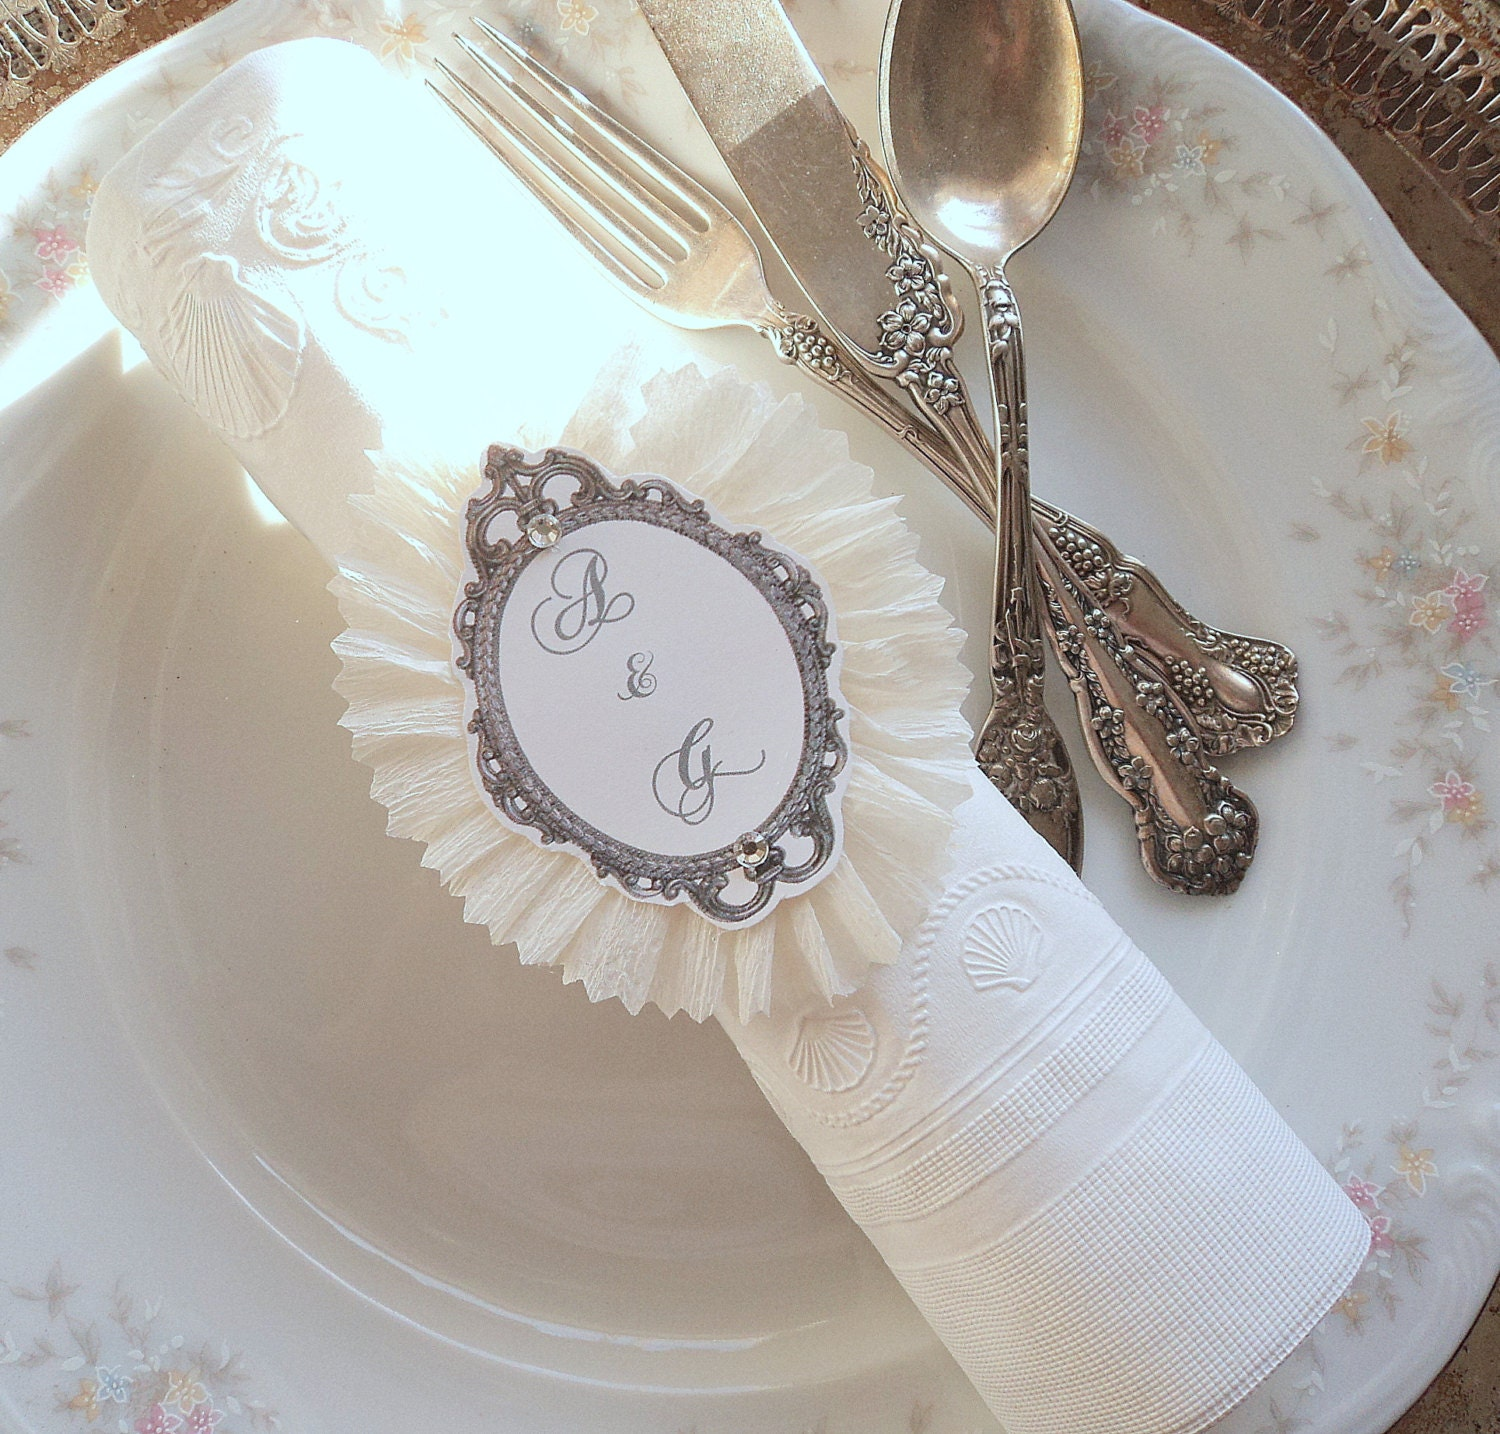 wedding rings 10 ruffled napkin rings with script paper and. Black Bedroom Furniture Sets. Home Design Ideas